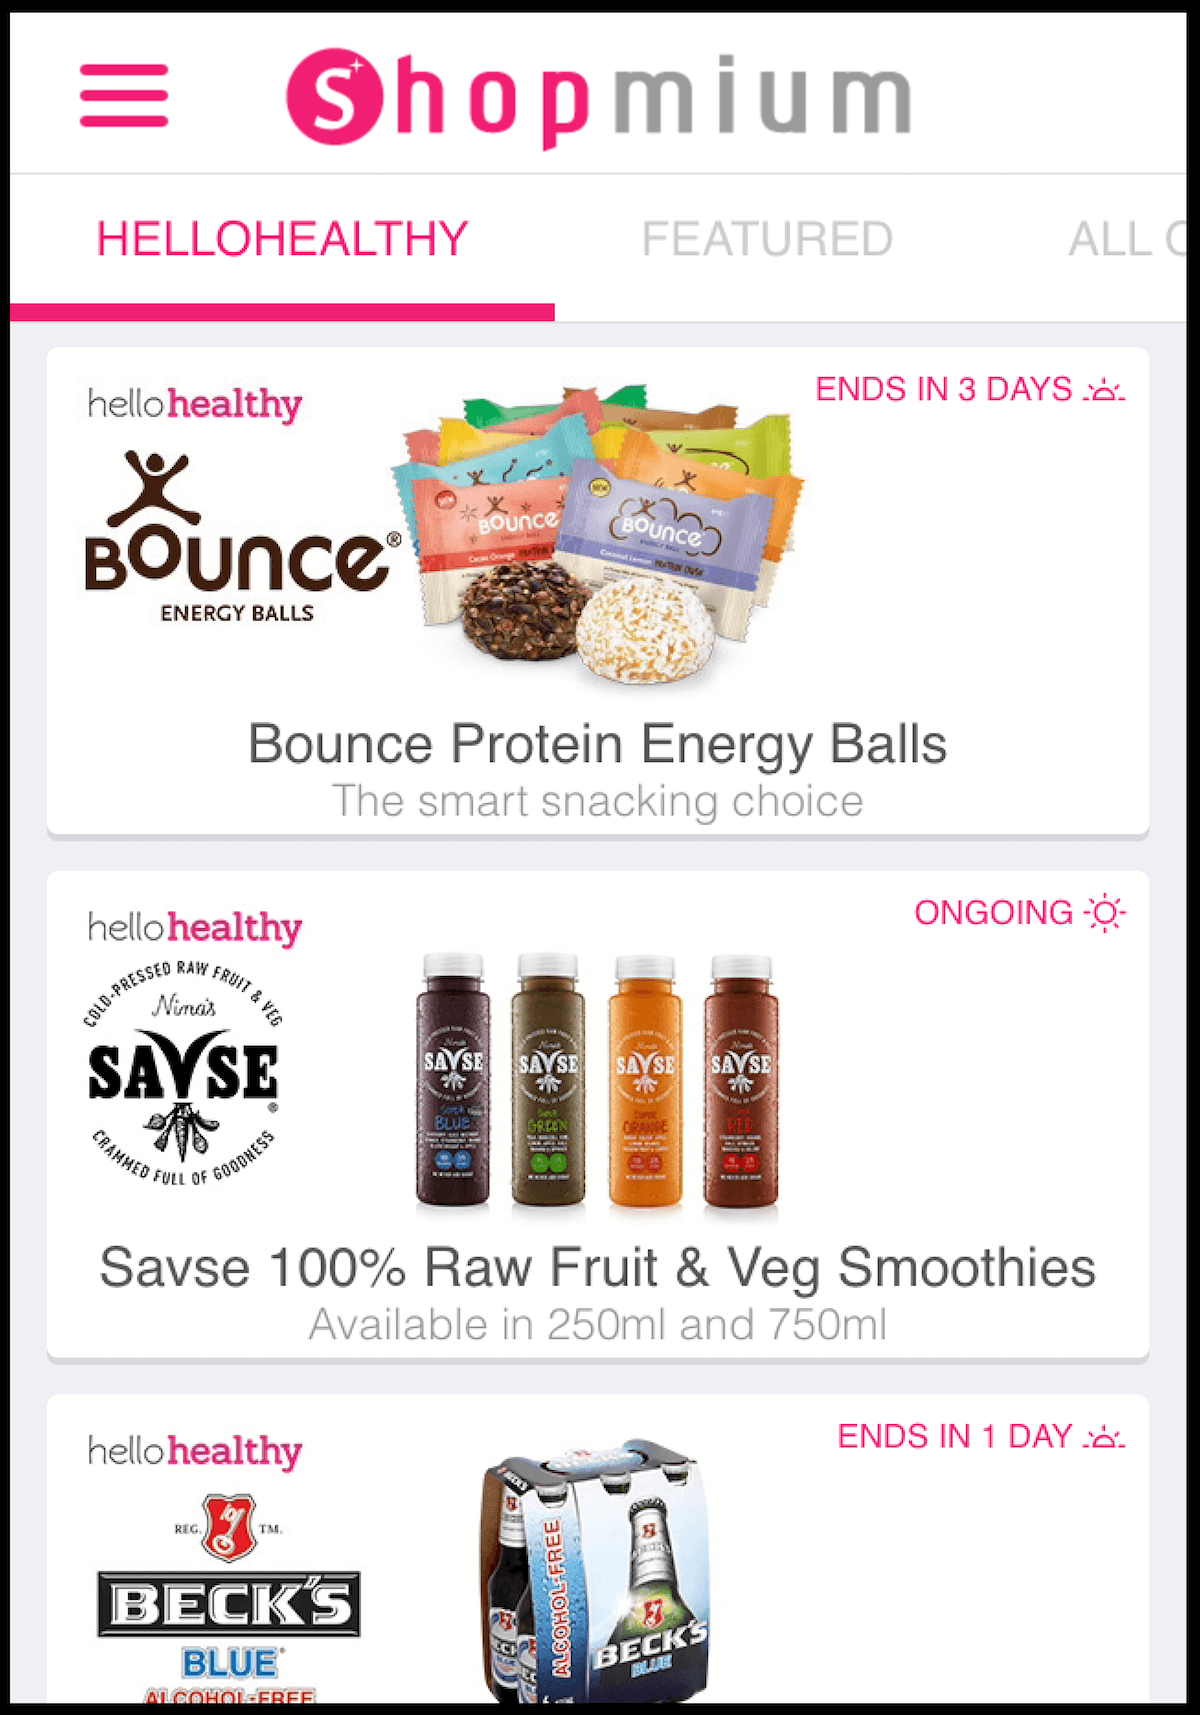 Hellohealthy on Shopmium review and competition news